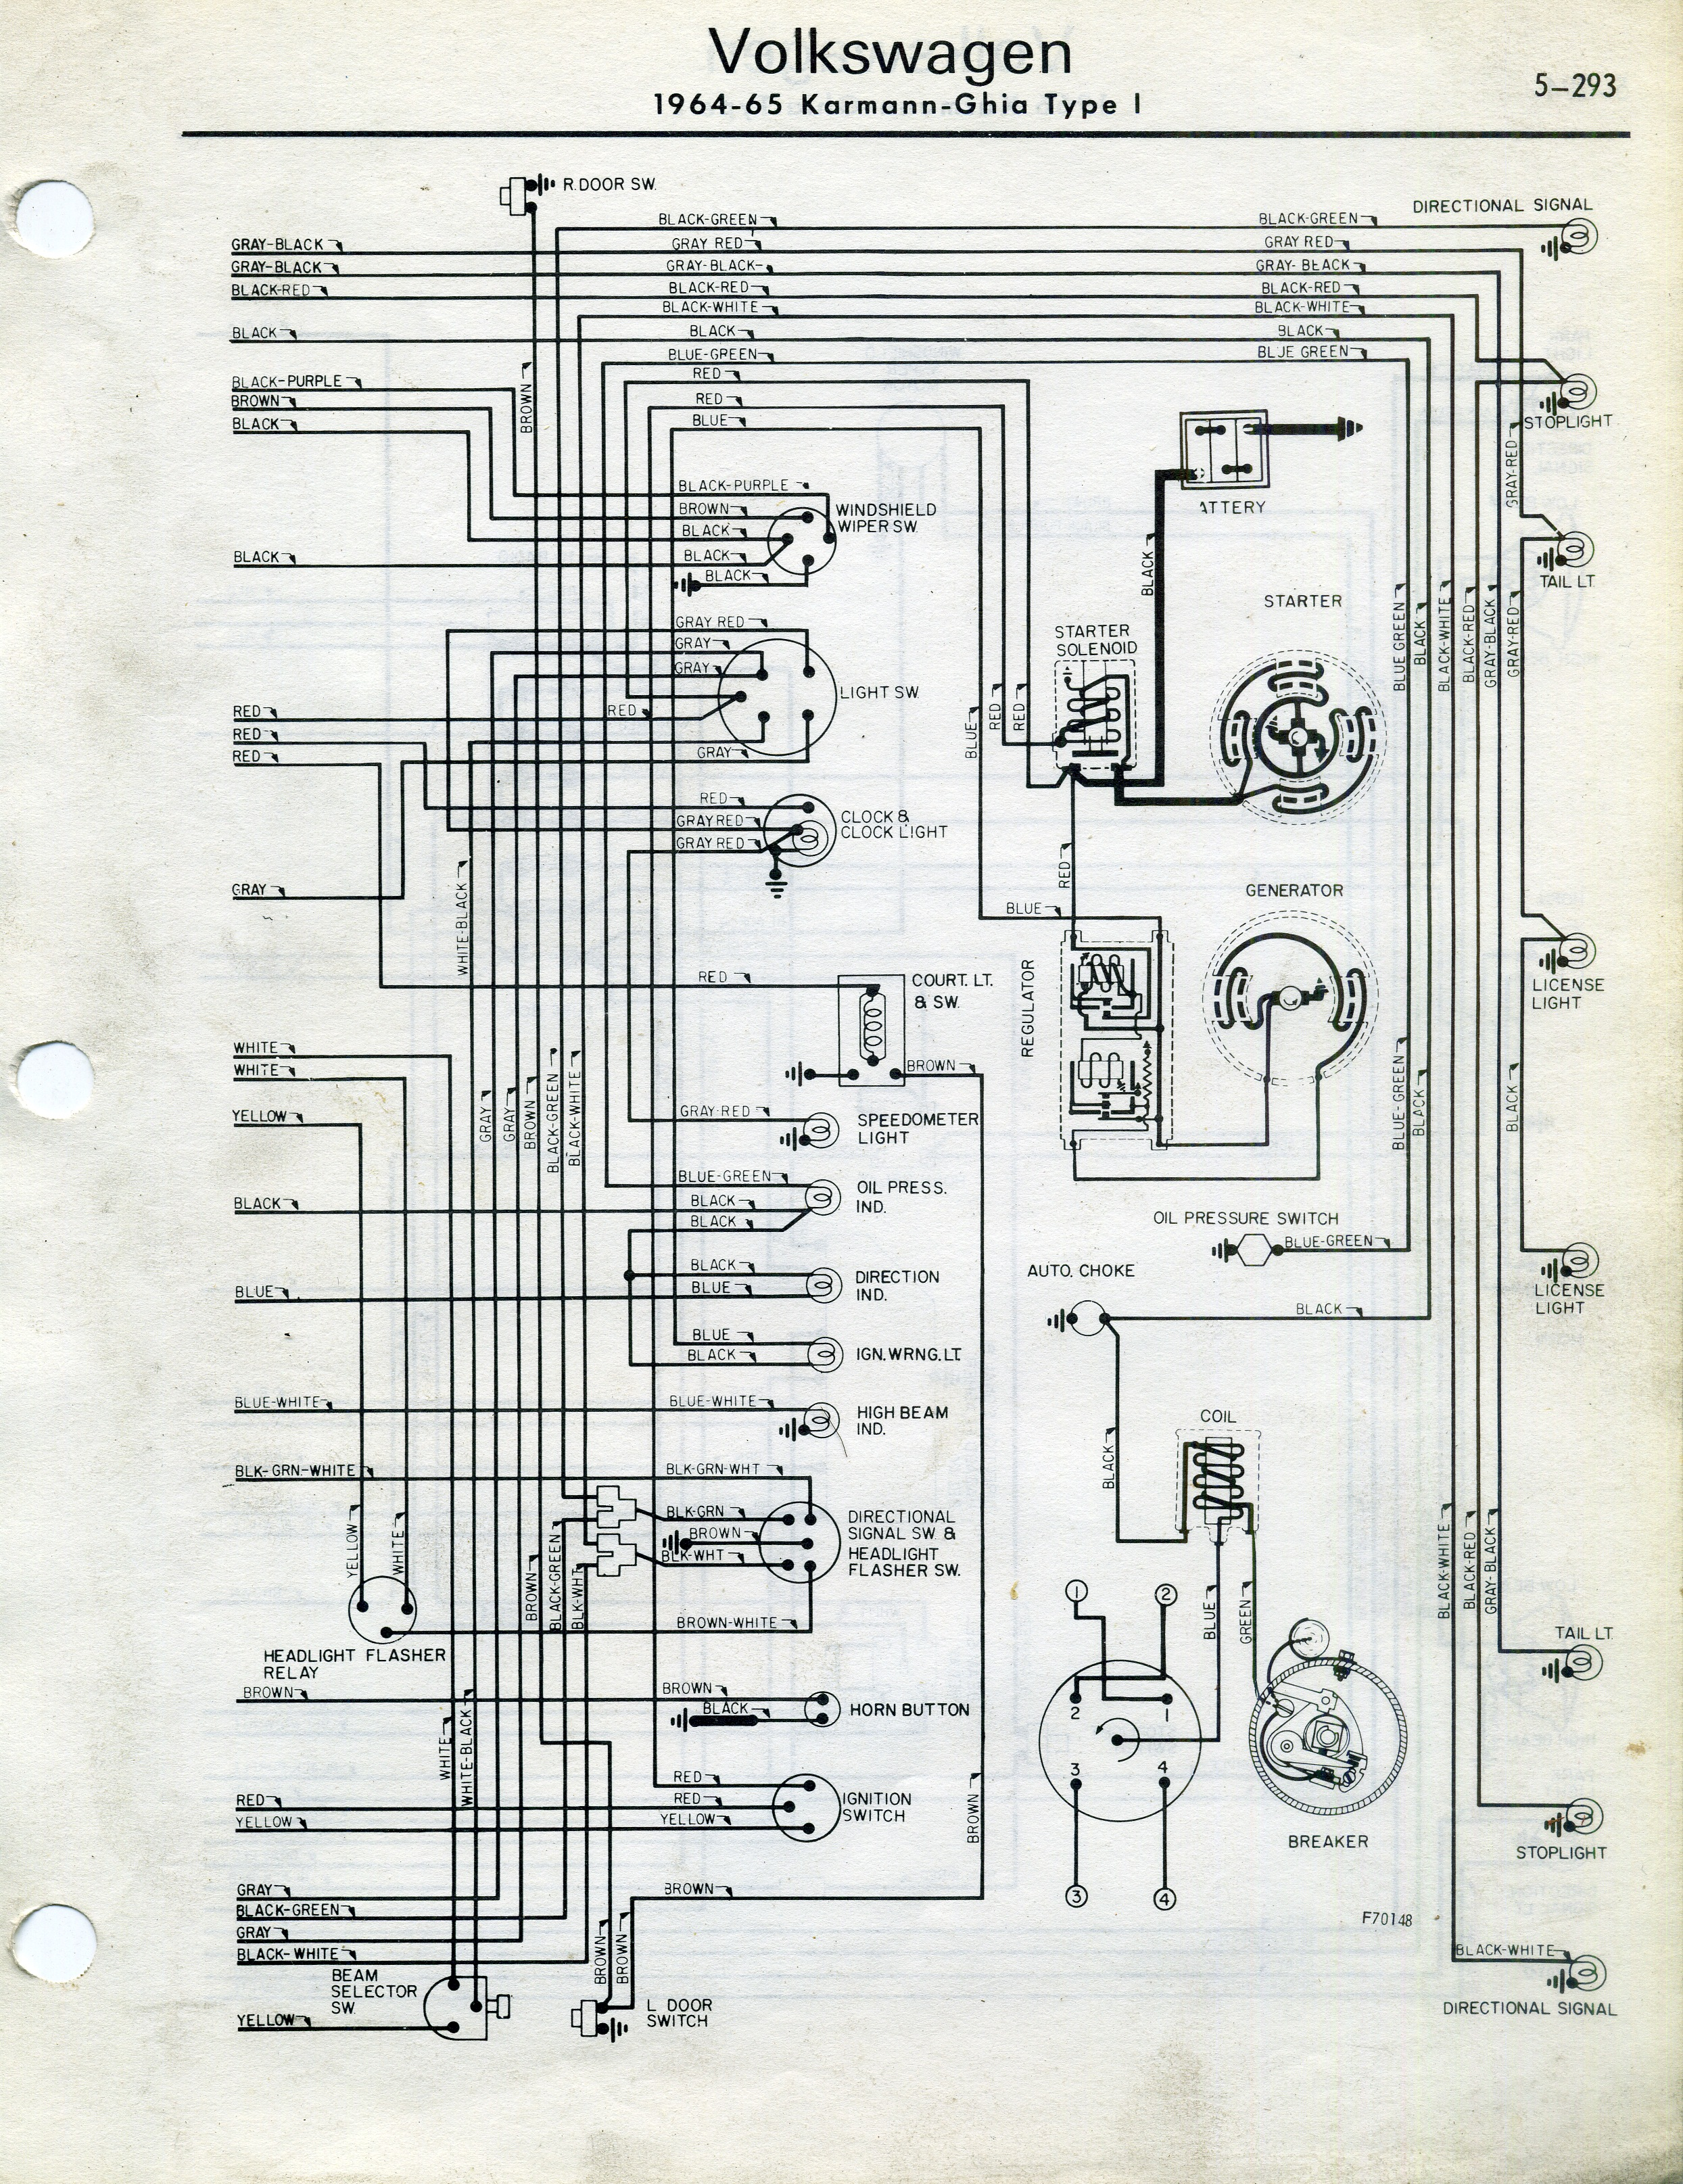 thesamba.com :: karmann ghia wiring diagrams 1967 vw karmann ghia wiring diagram #11